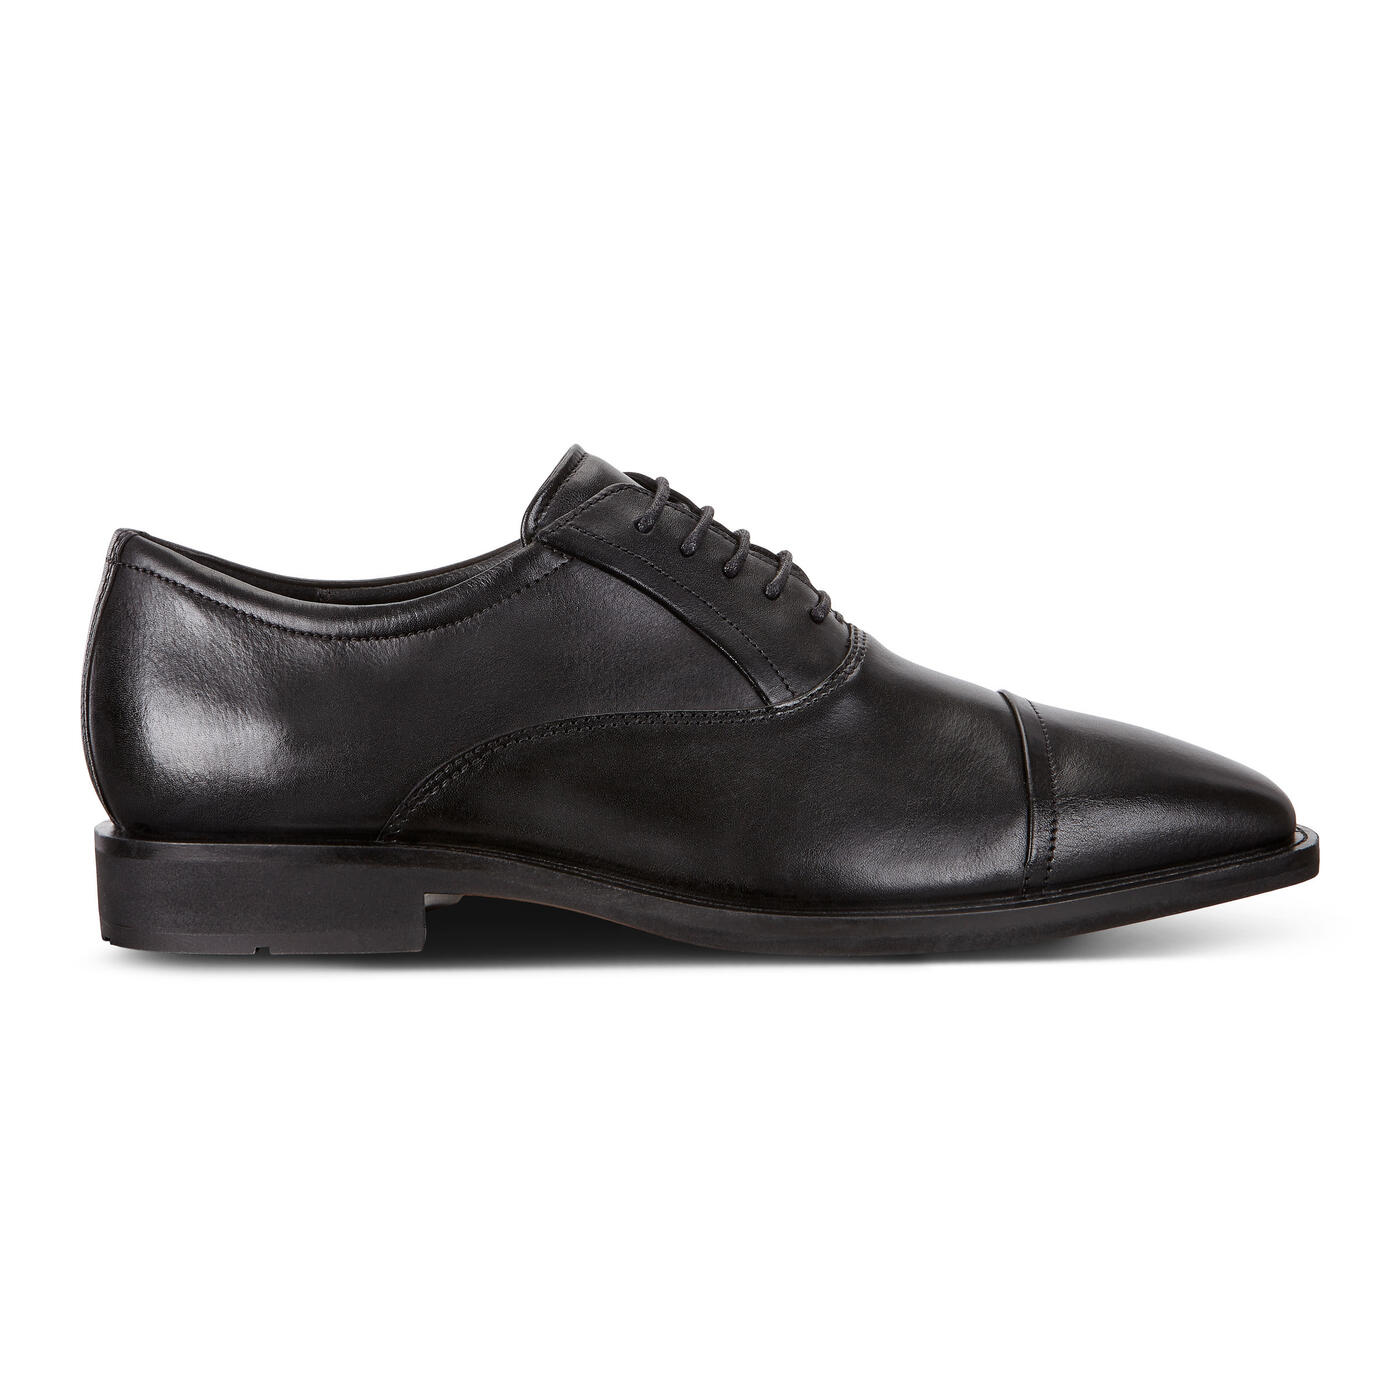 ECCO Calcan Men's Dress Shoe